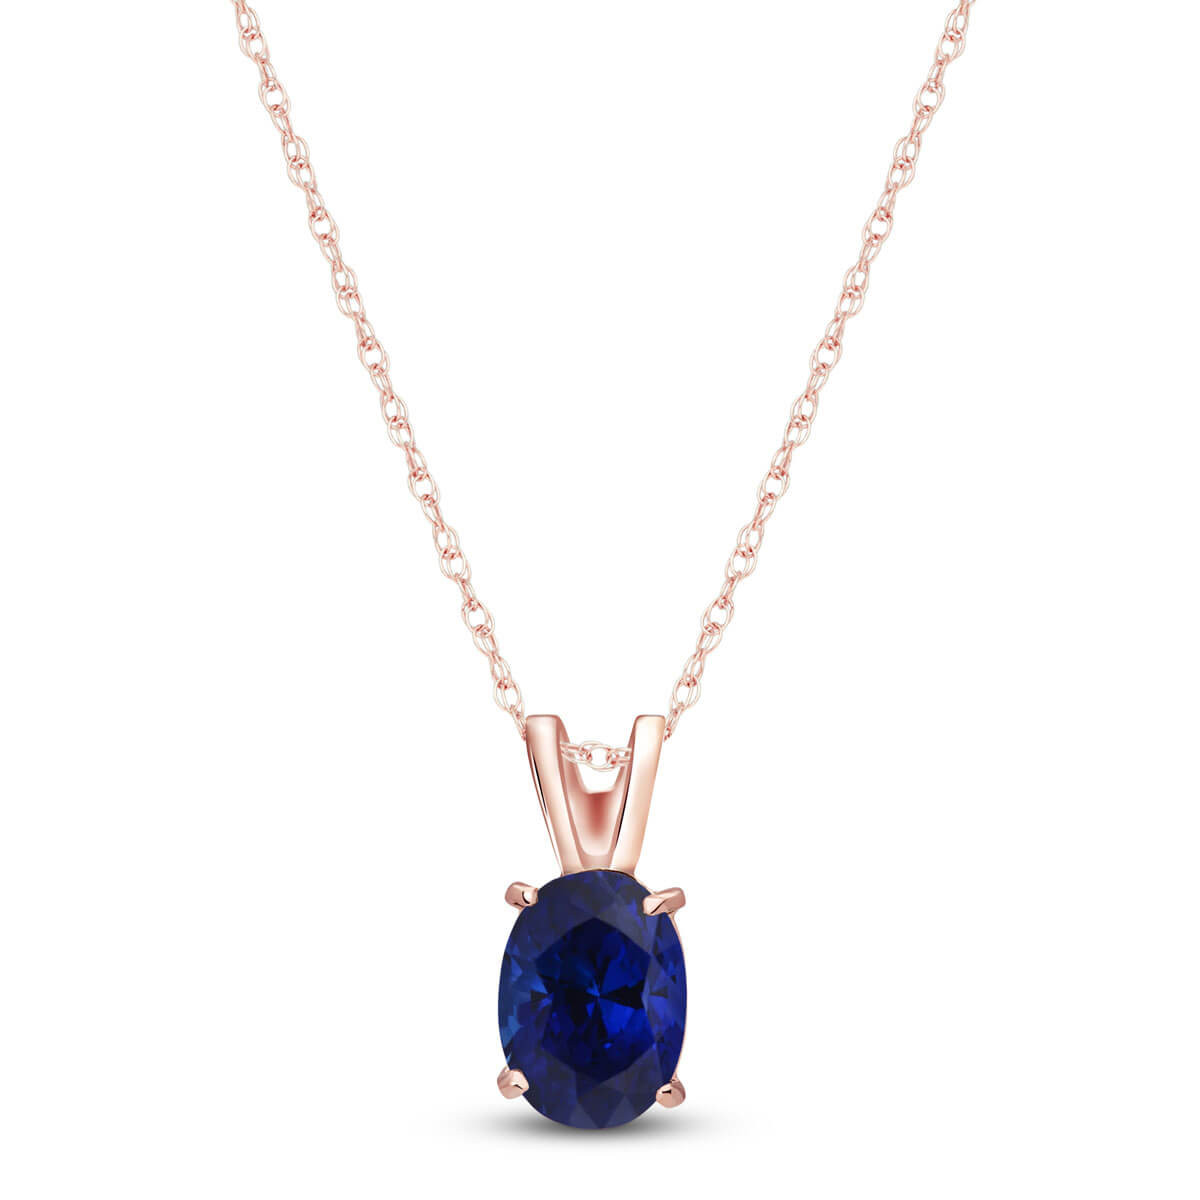 Sapphire Oval Pendant Necklace 1 ct in 9ct Rose Gold